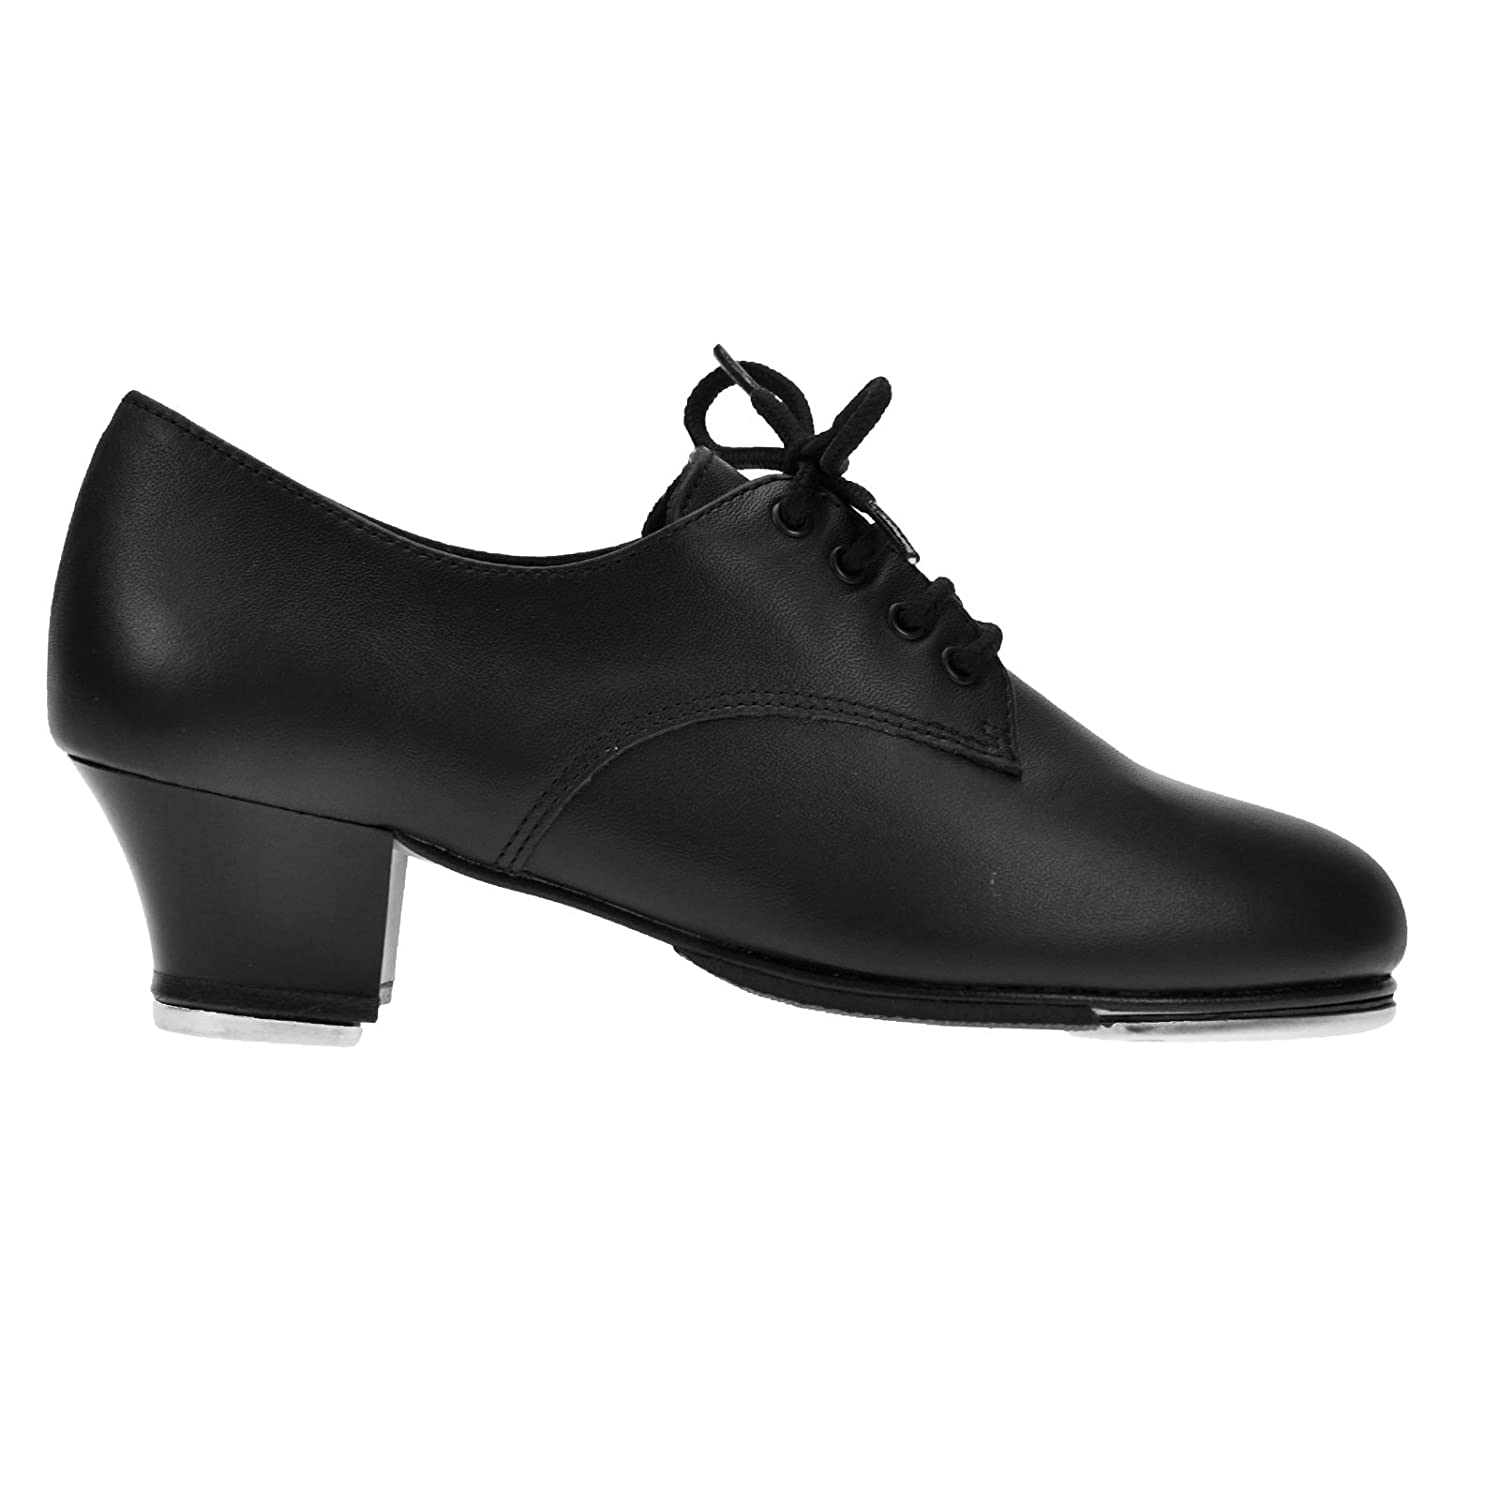 Capezio CG54 Black Westend 2 Oxford Tap Shoe Medium Fit